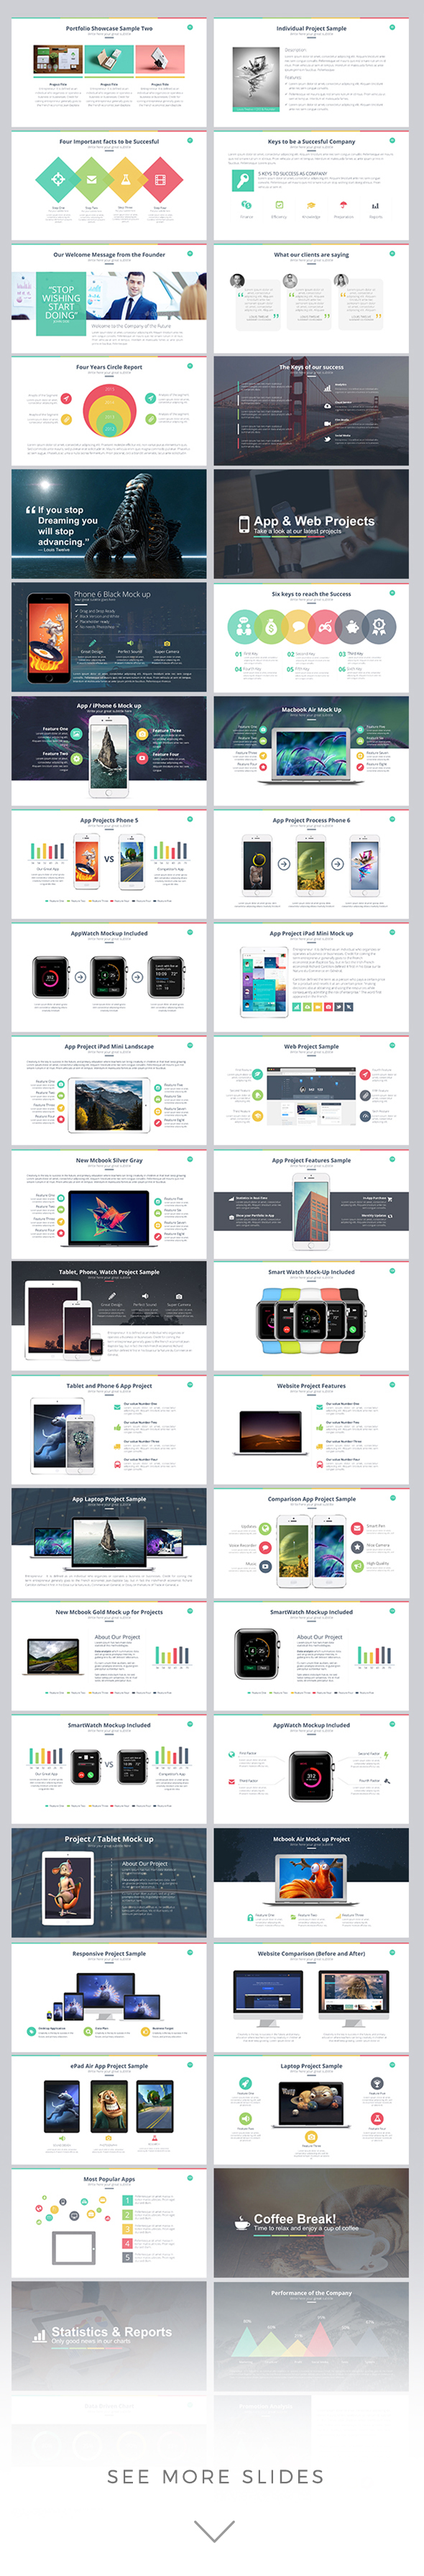 marketer powerpoint template